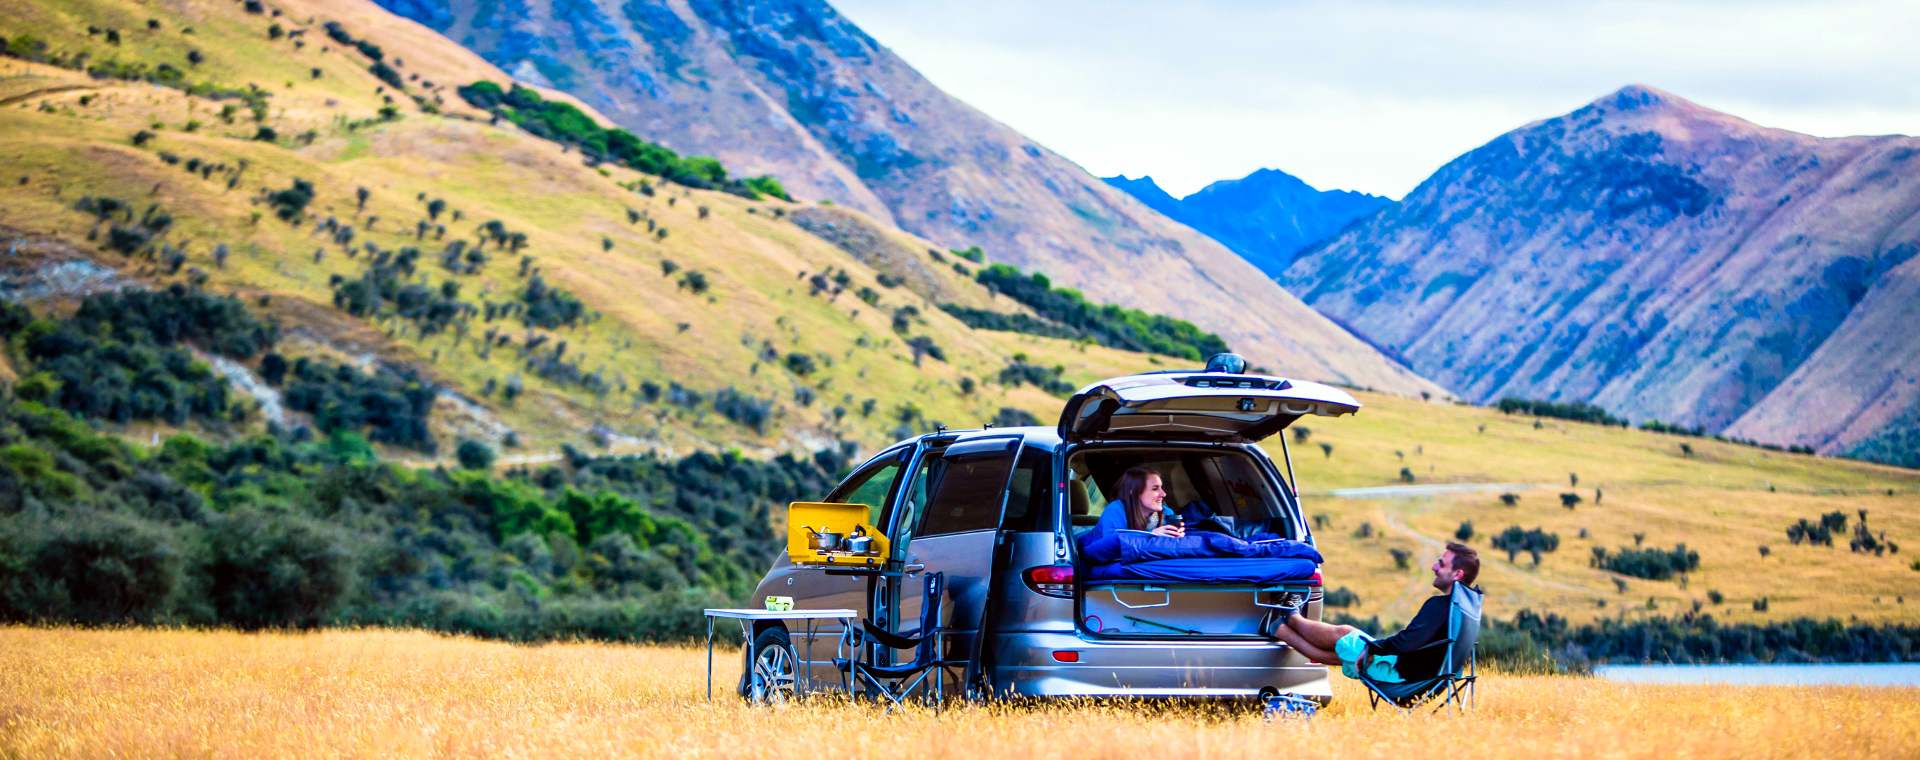 Camping Tour in New Zealand - Header